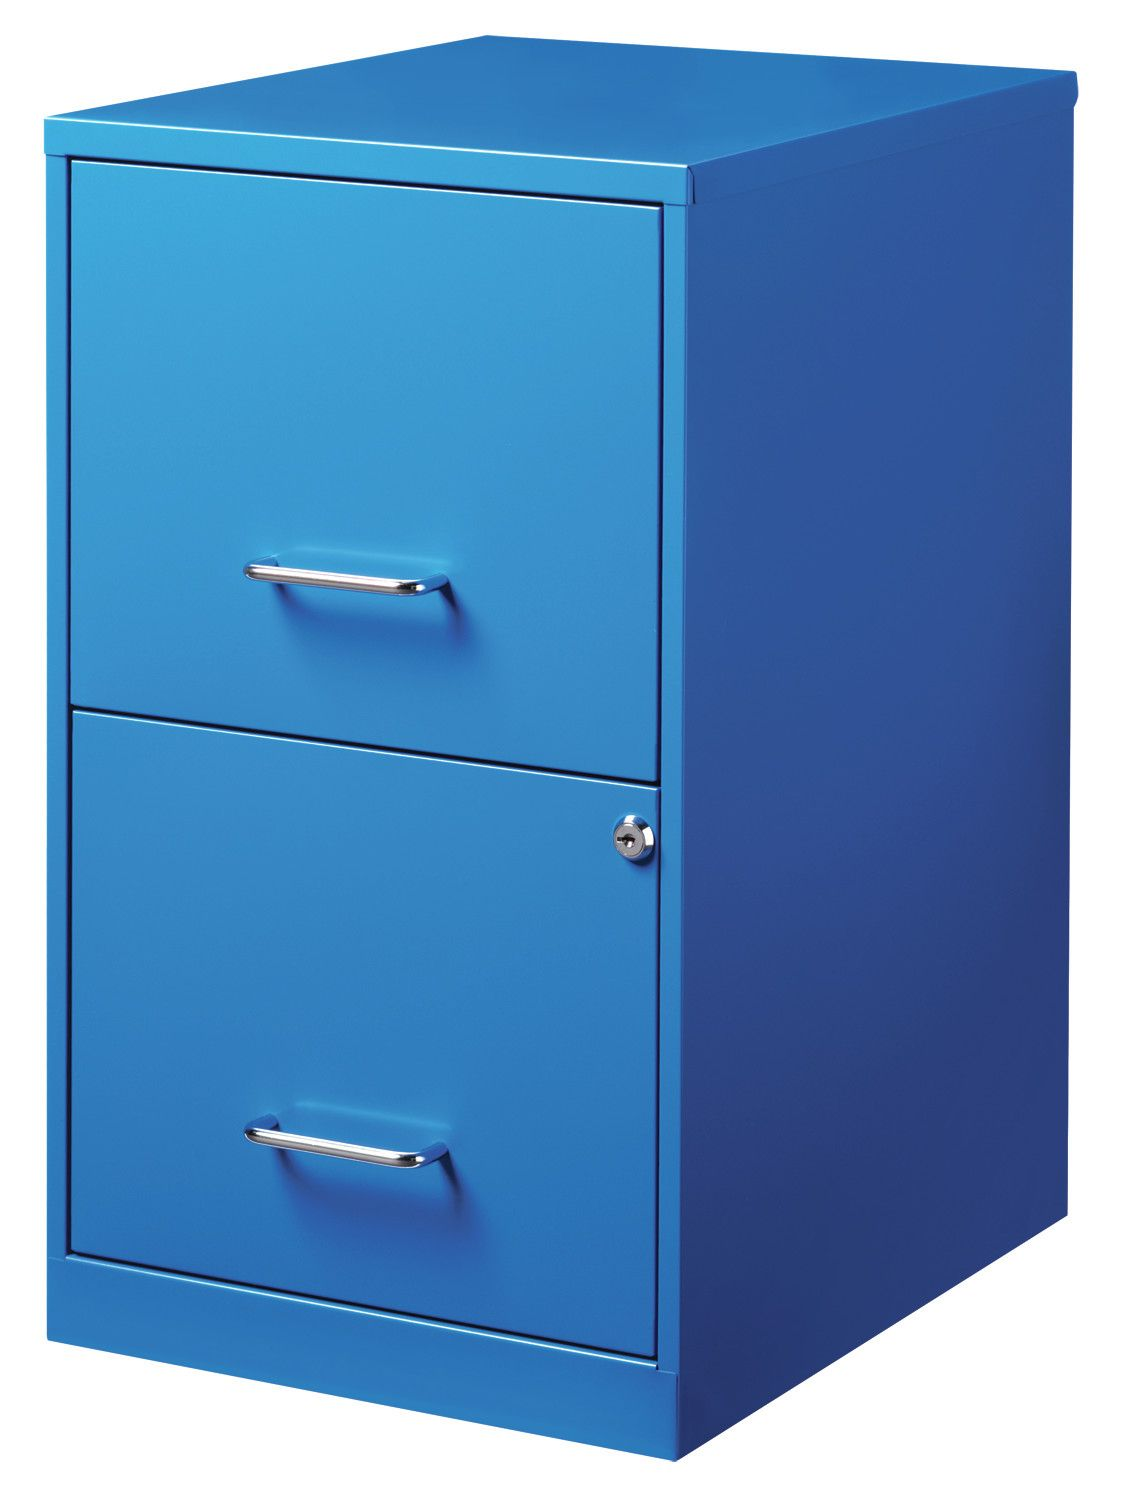 Features Glide Suspension Locking Drawer Pull Handle